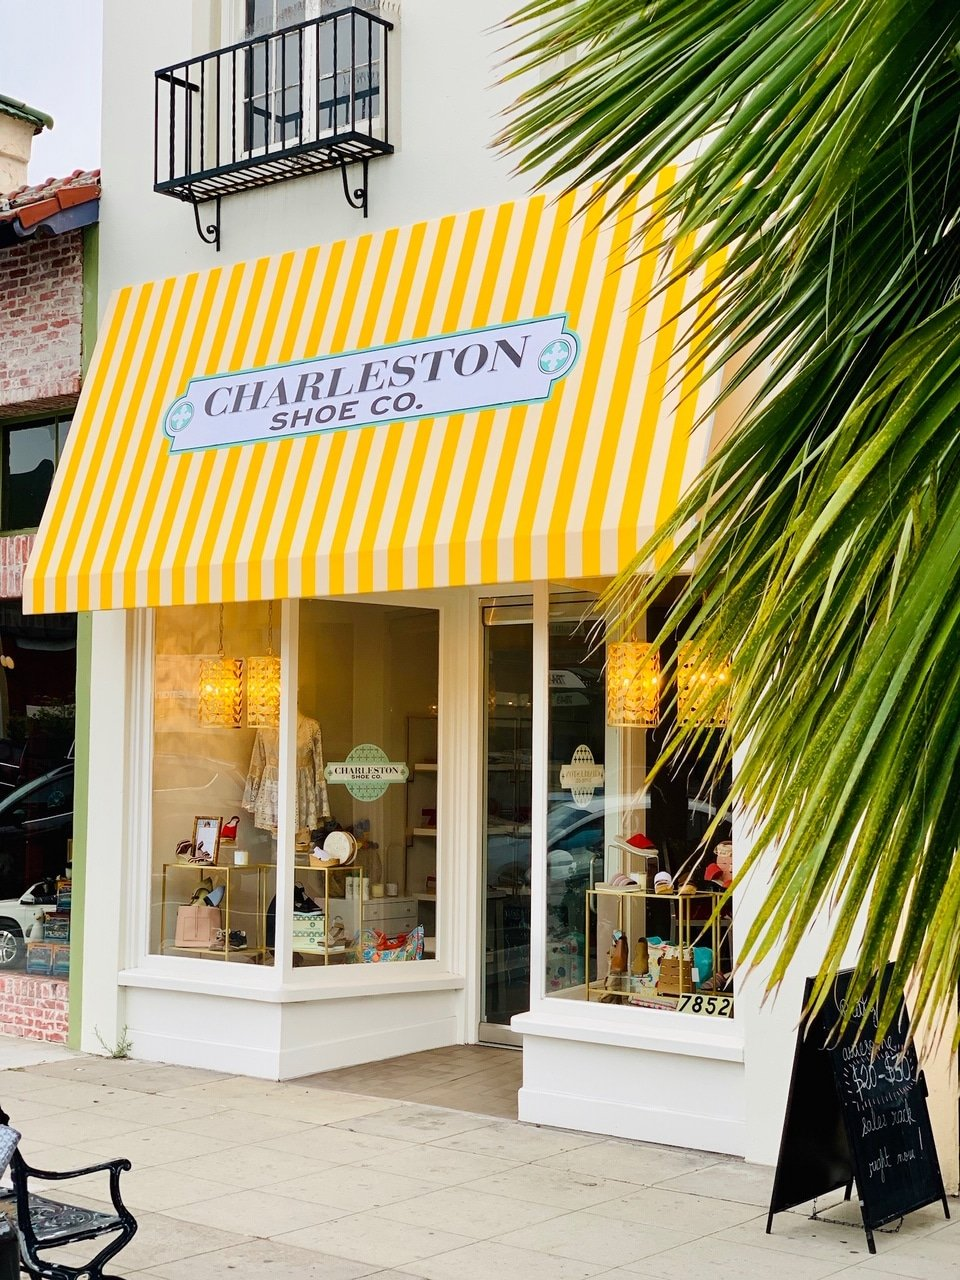 The yellow awning of Charleston Shoe Co., a La Jolla boutique on Girard Avenue.